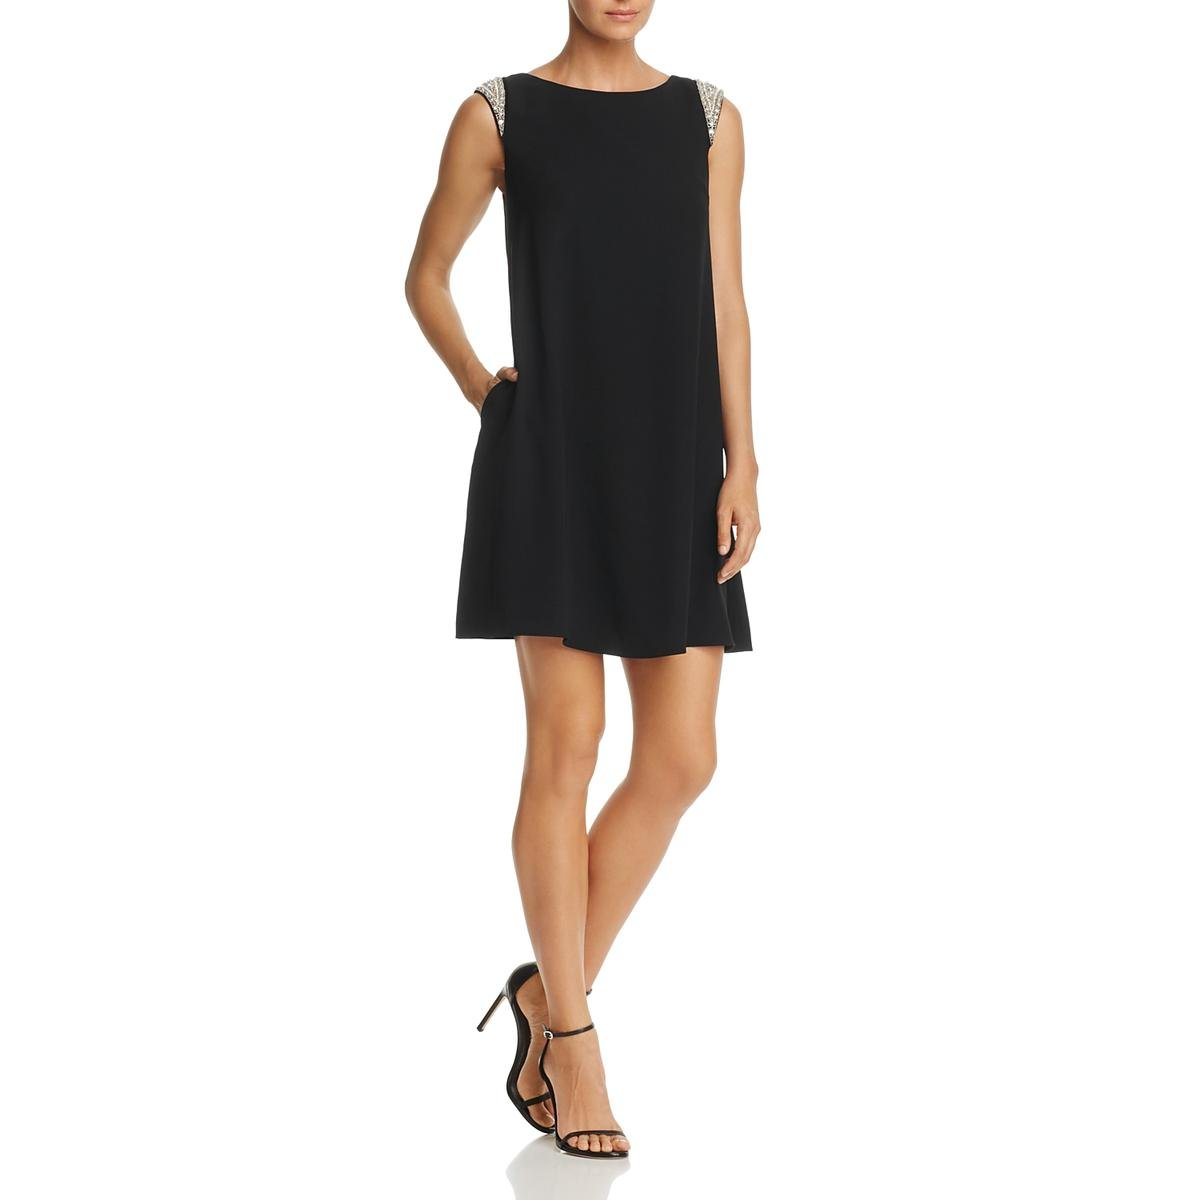 3f0d90647d3 Aidan Mattox Womens Trapeze Embellished Cocktail Dress at Amazon Women s  Clothing store